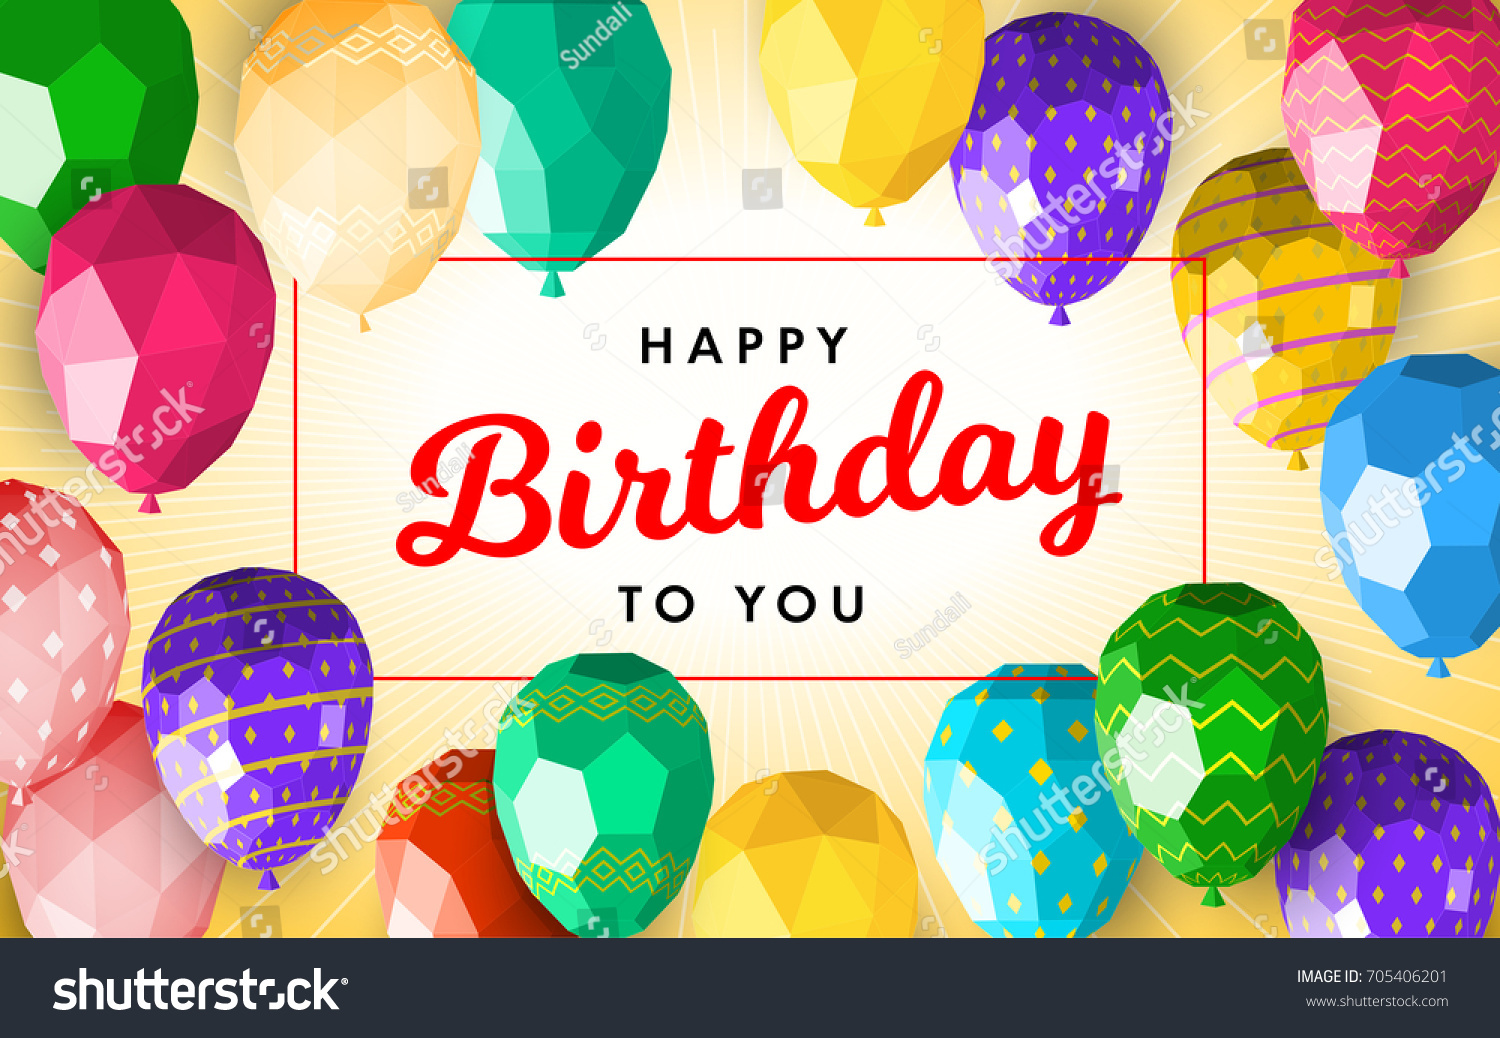 Happy Birthday Greeting Card Template Modern Stock Image